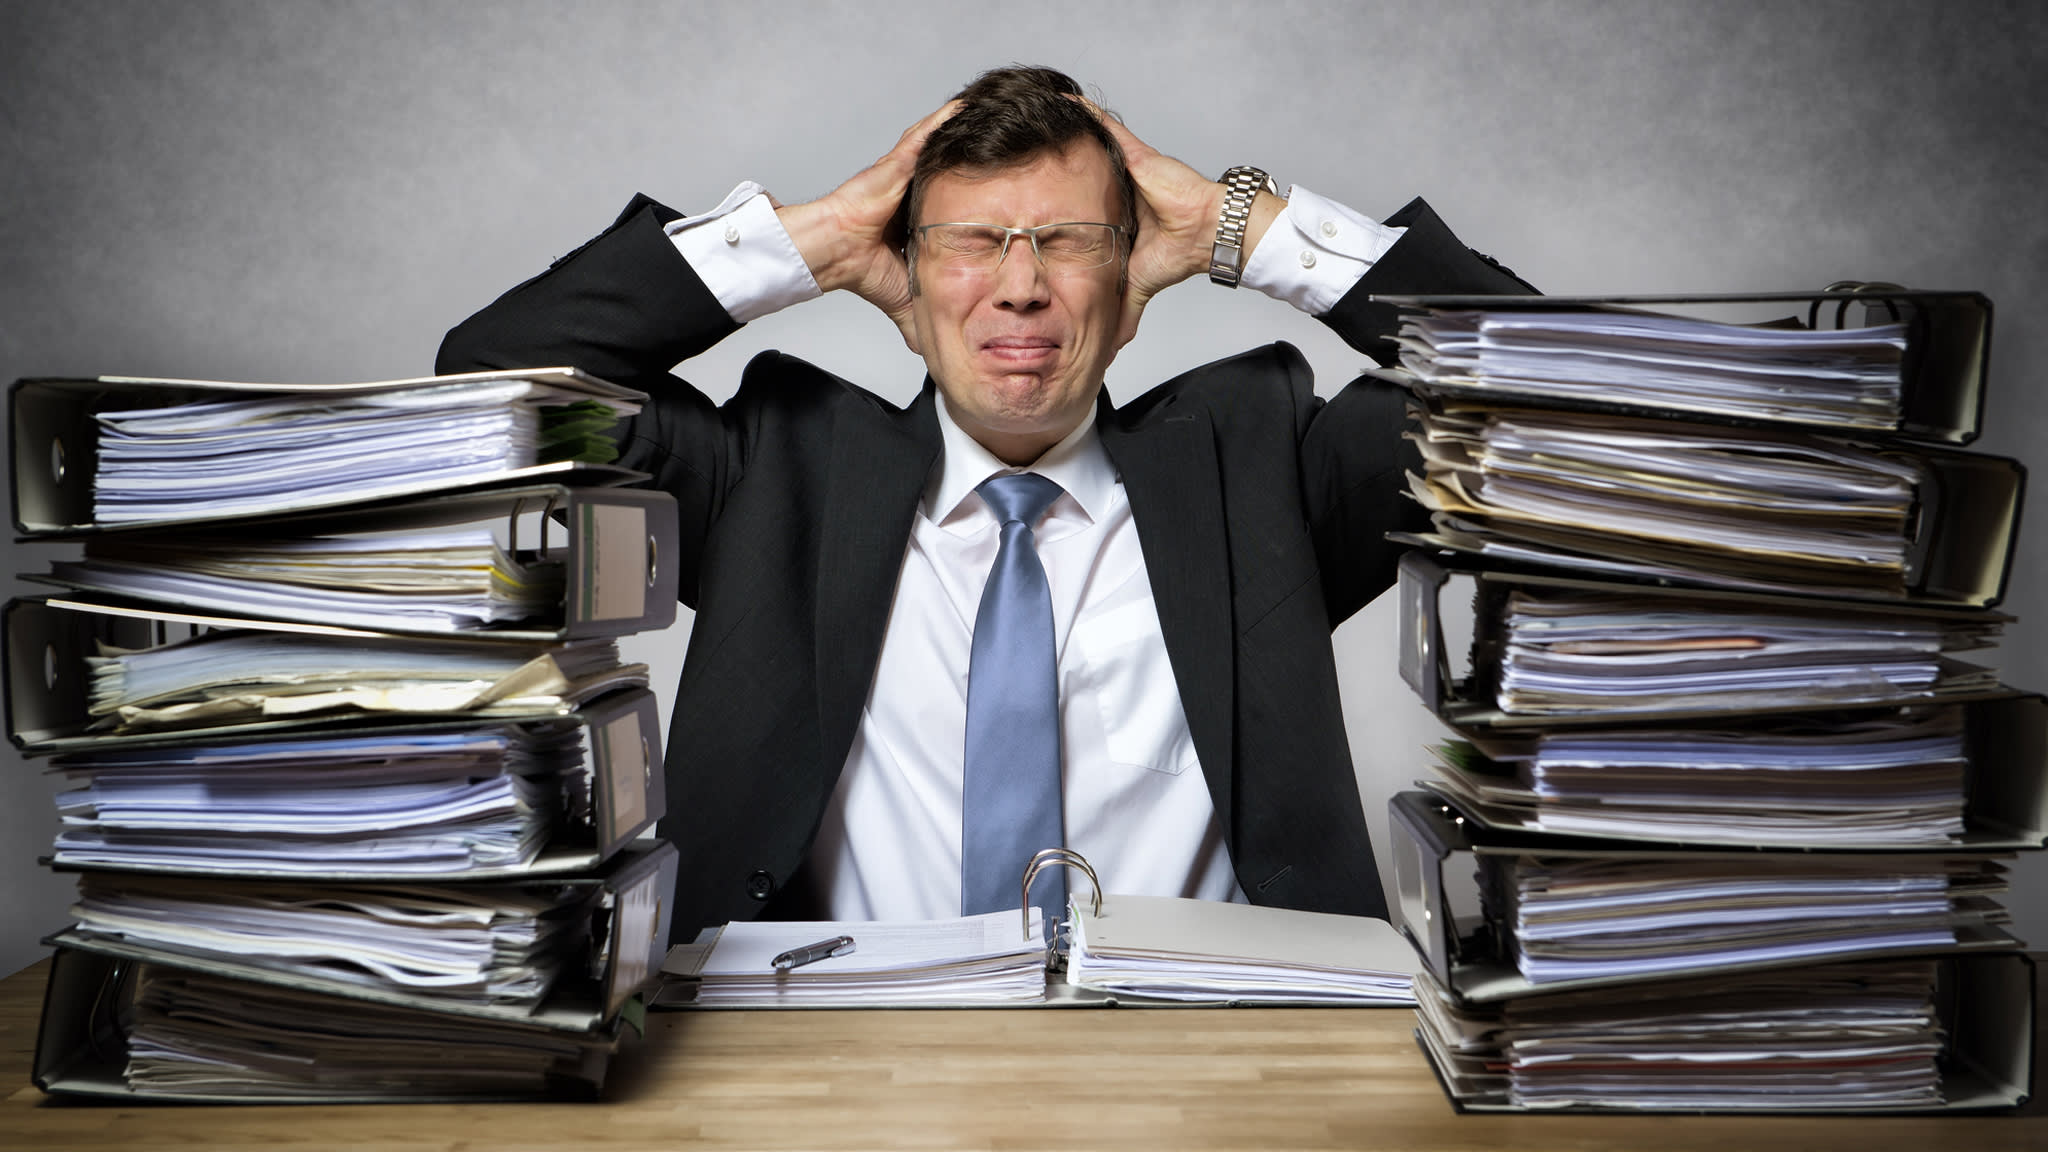 The managers who hold the line on workplace stress   Financial Times